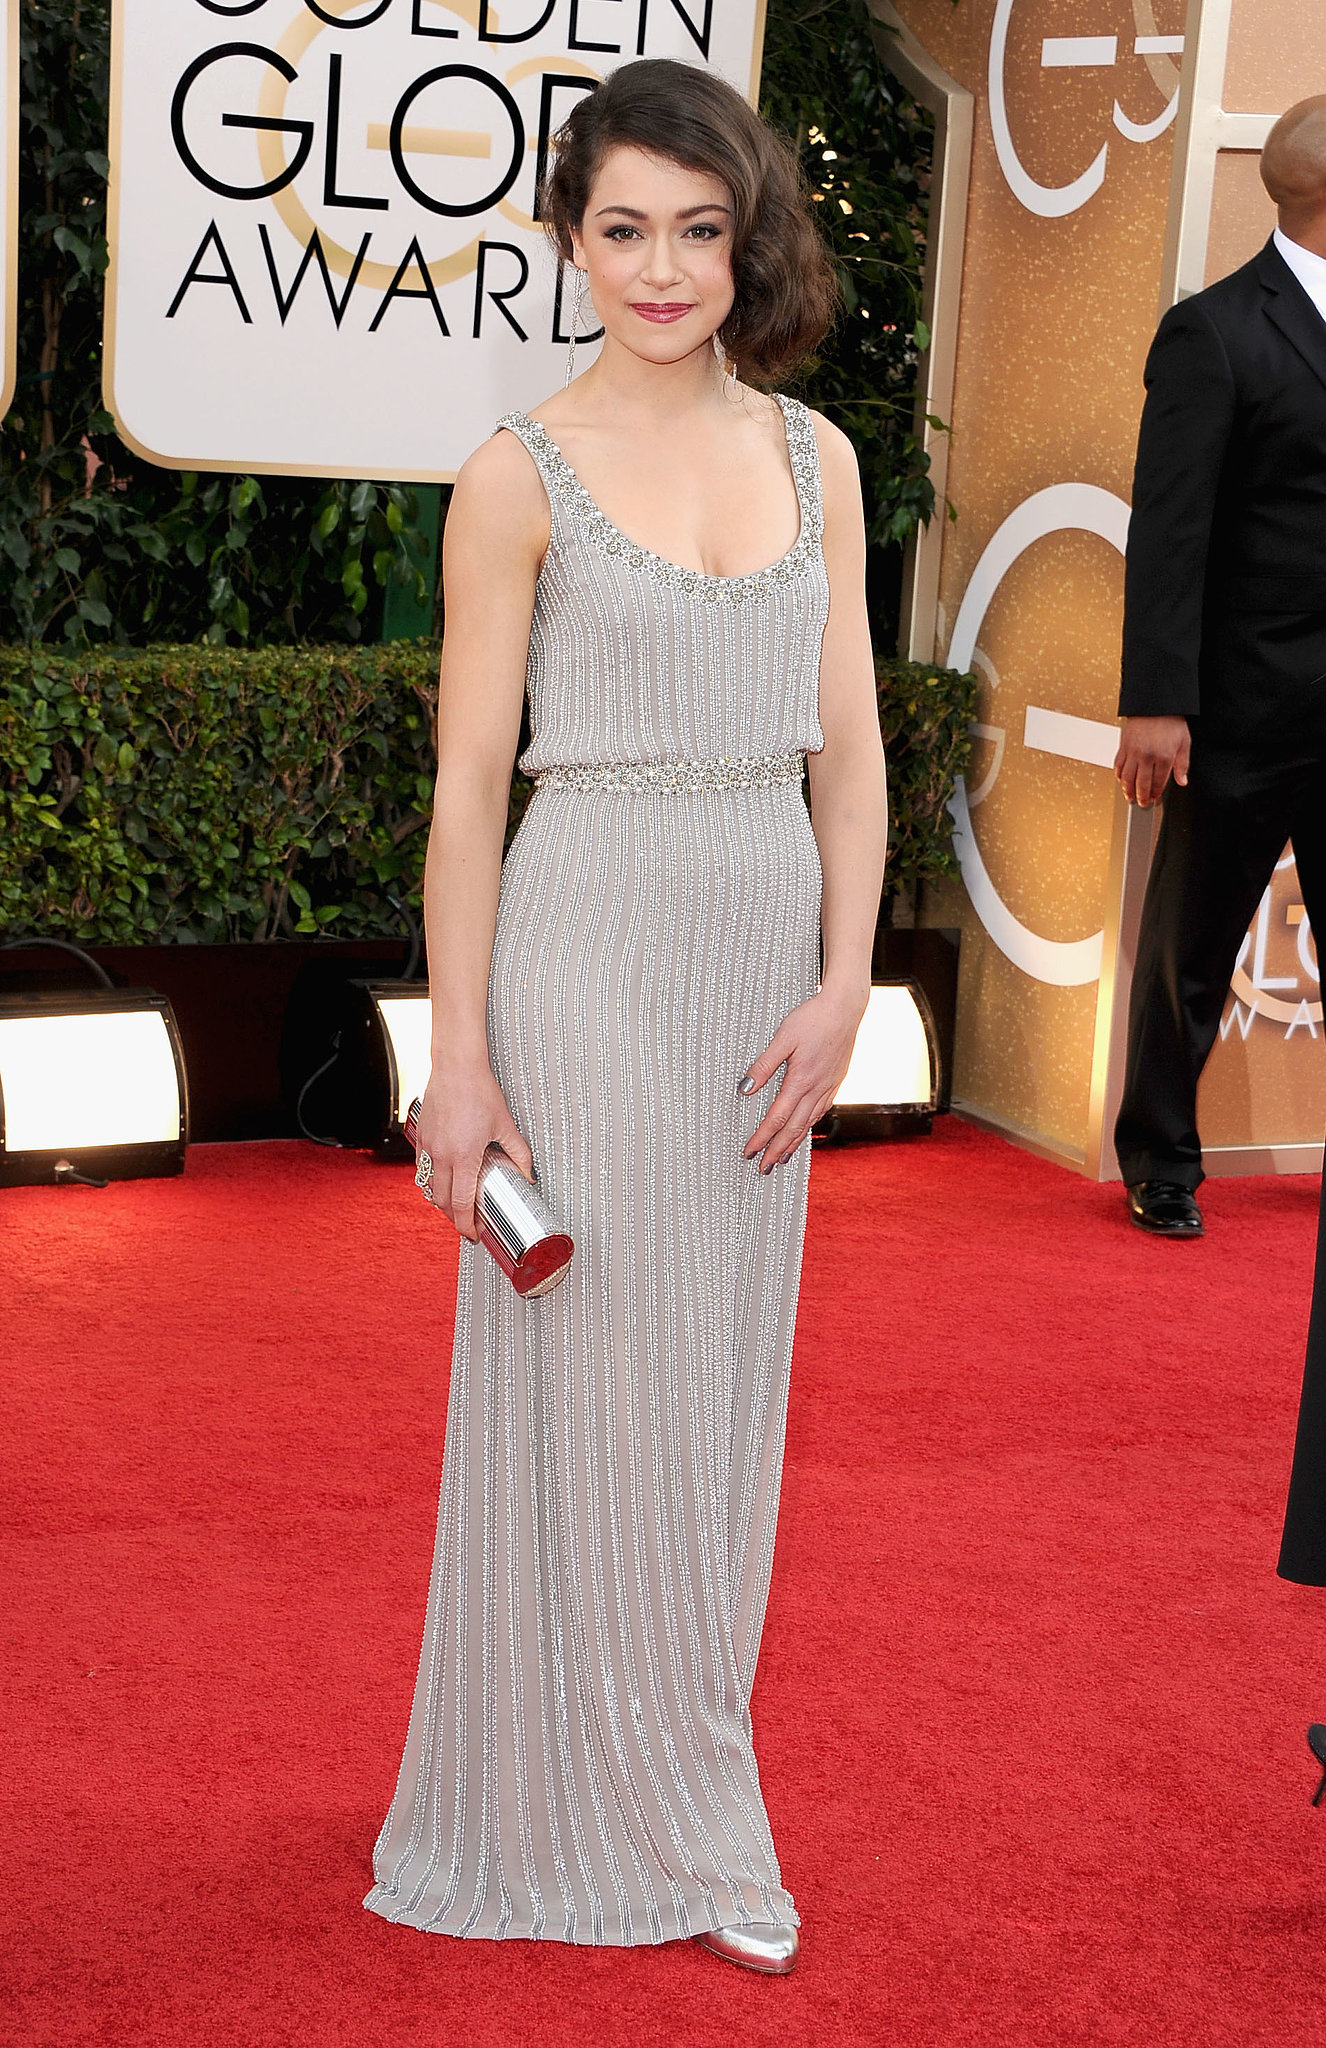 Tatiana Maslany Annual Golden Globe Awards in Beverly Hills